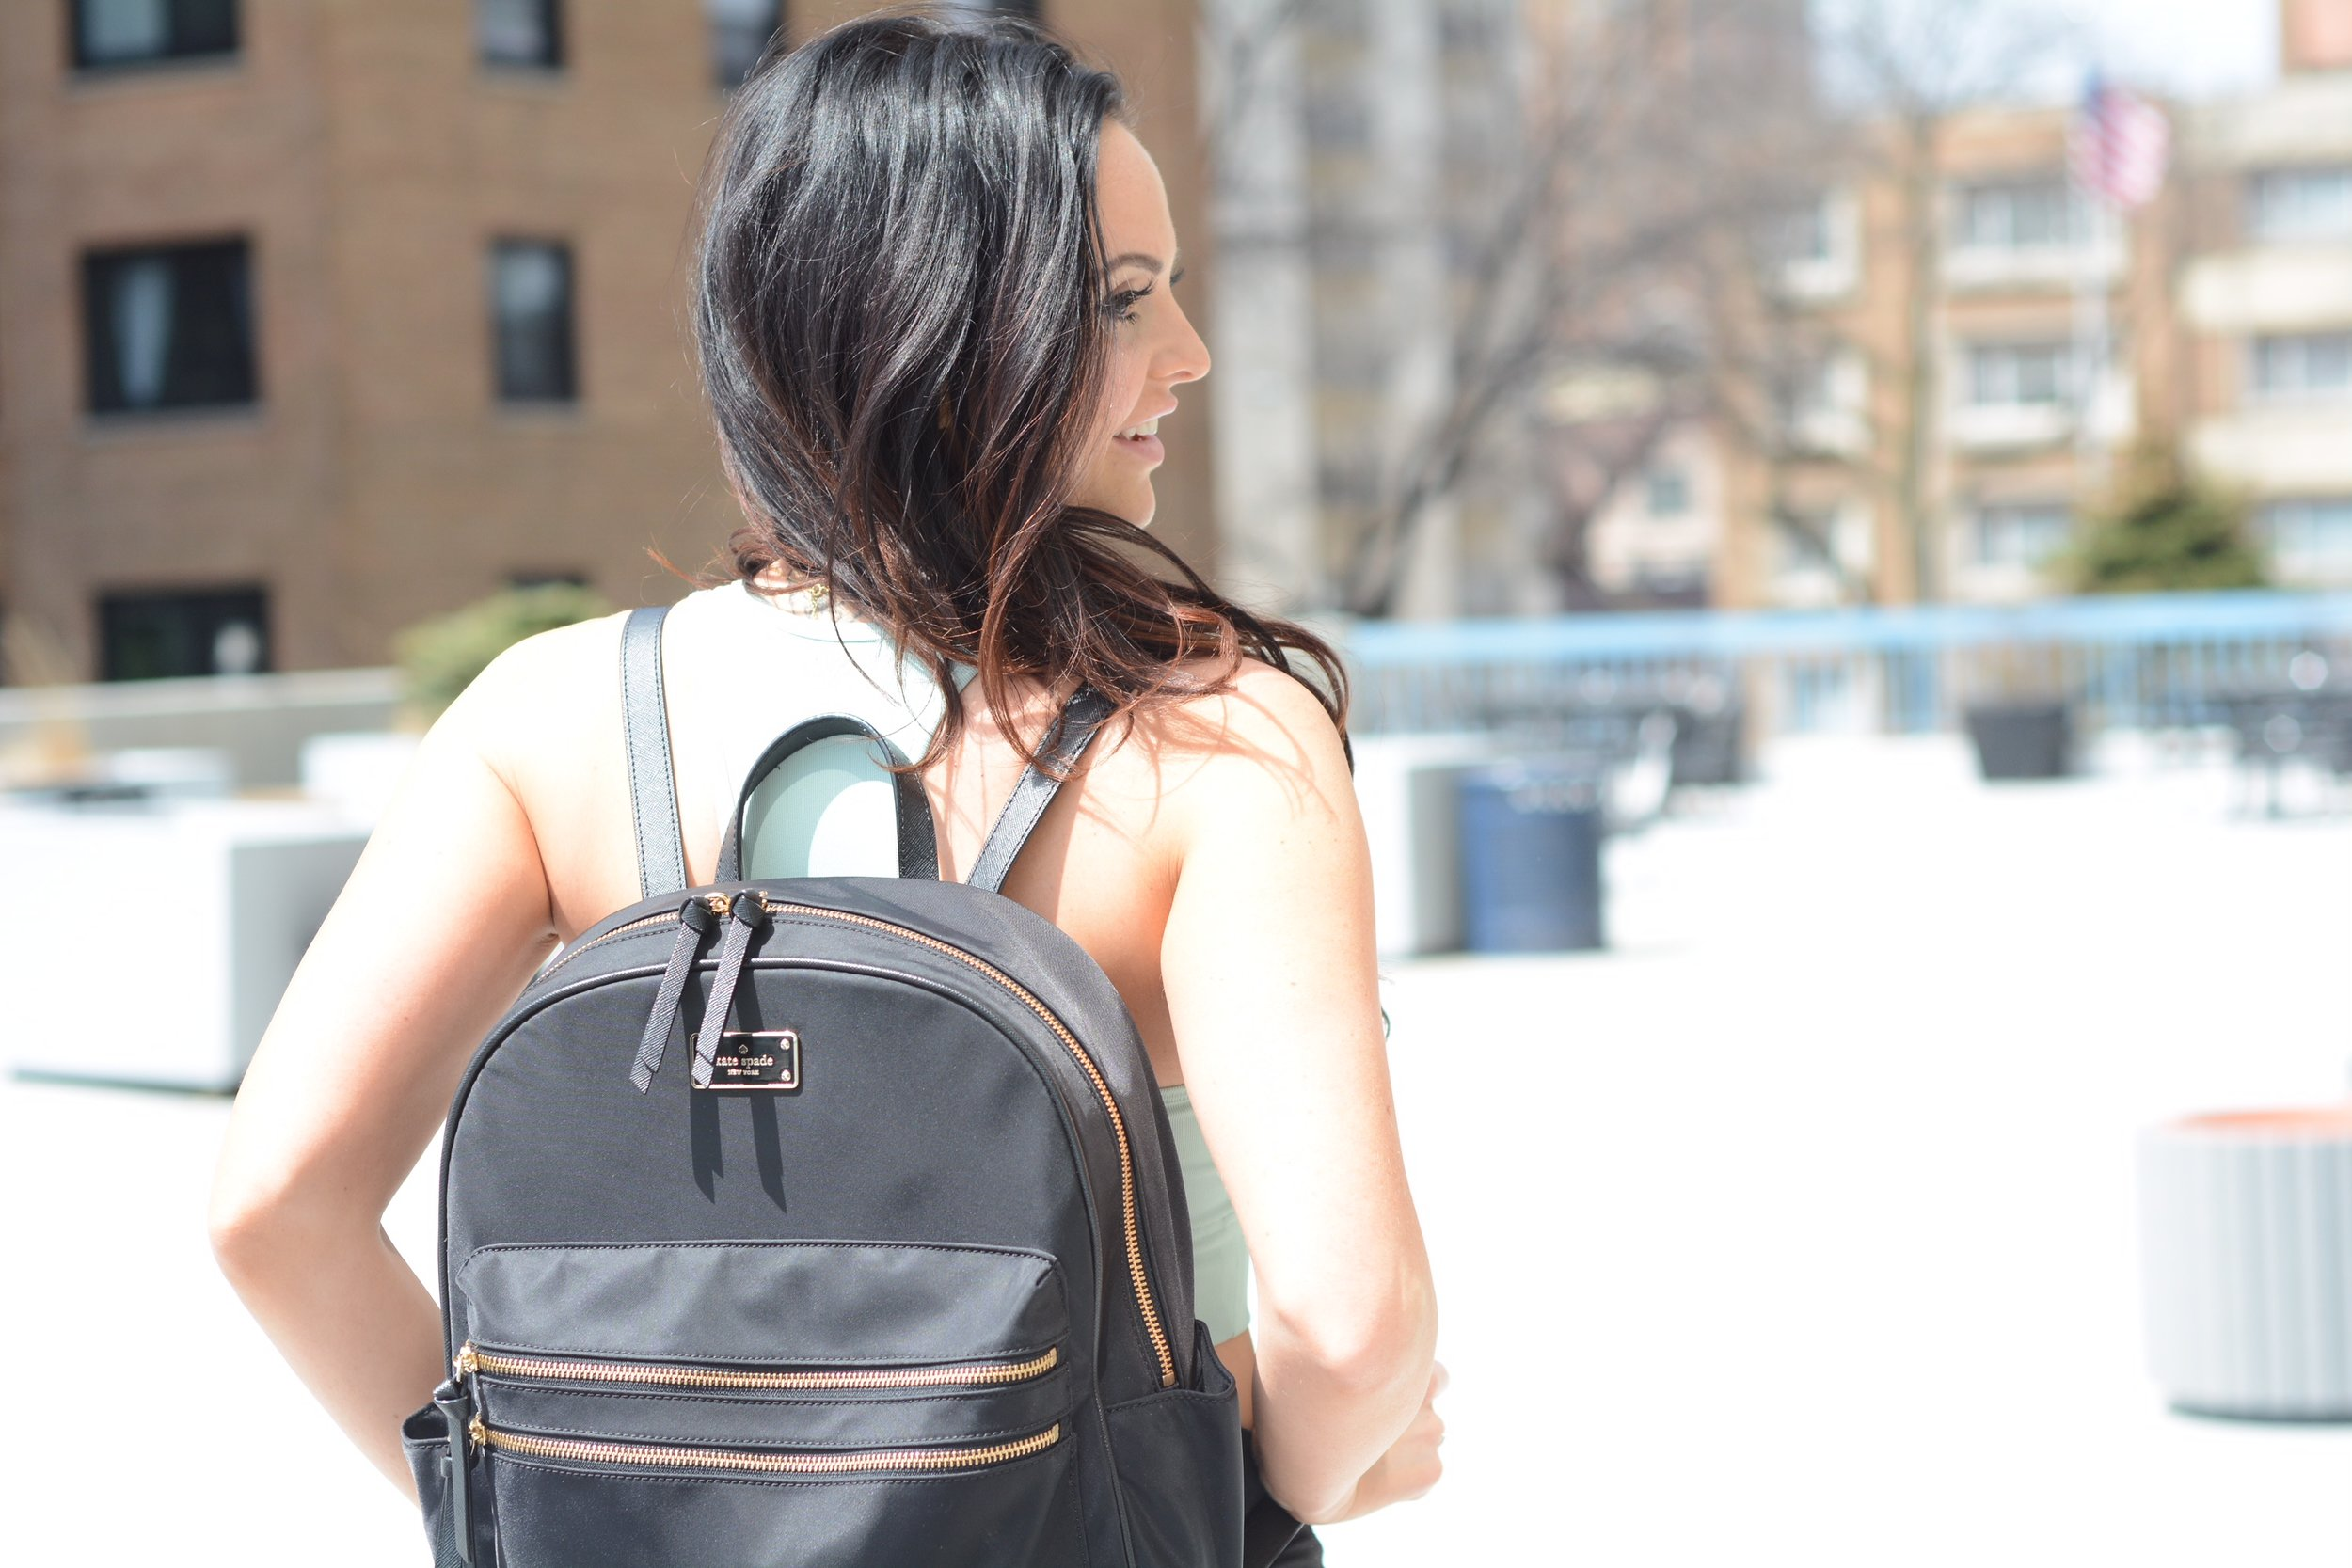 backpack kate spade travel tips justinefit justine moore sloan stay fit traveling vacation